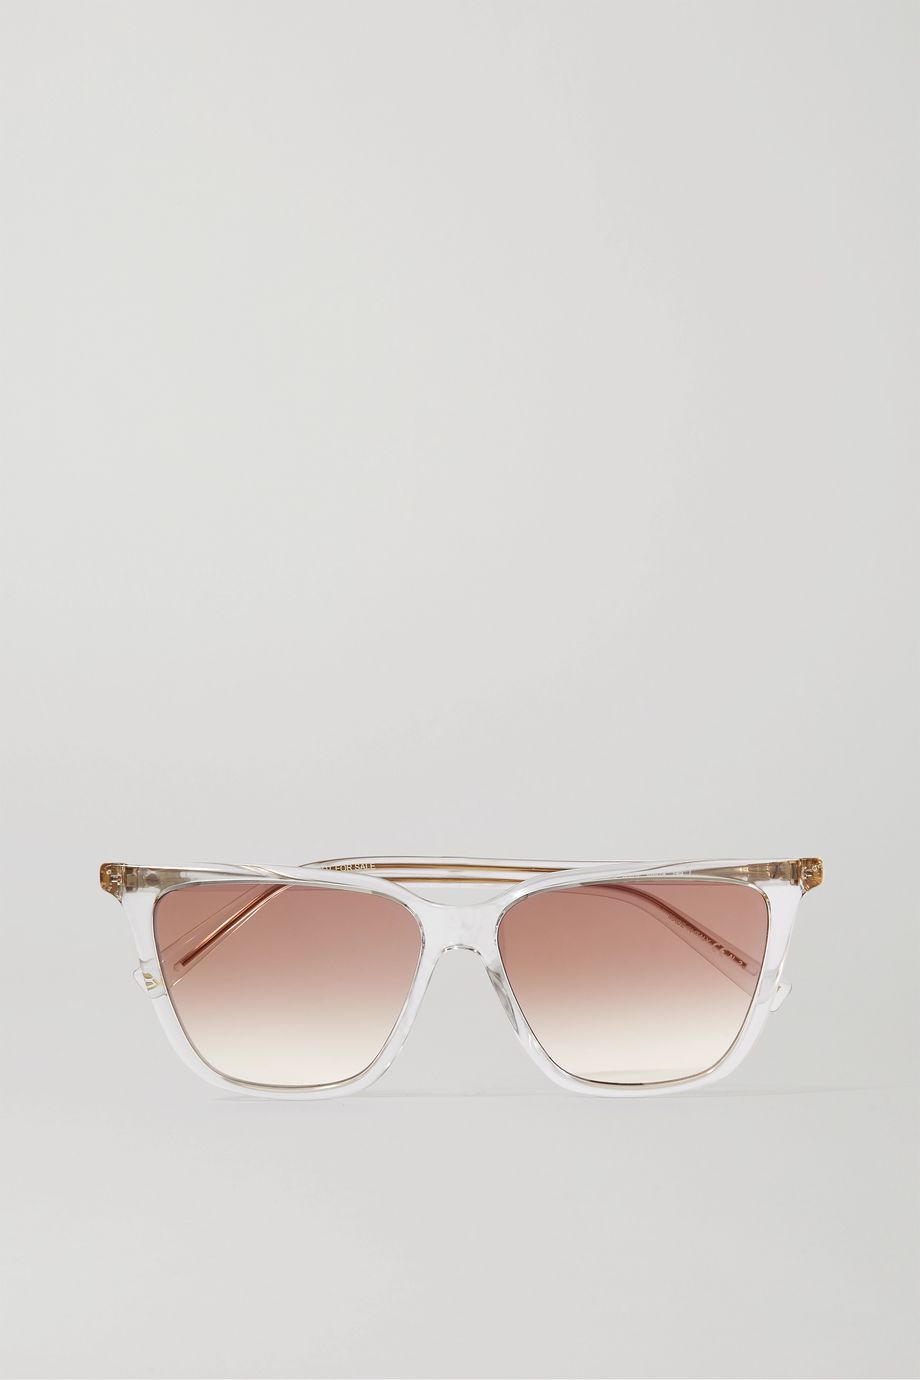 Givenchy Square-frame acetate and gold-tone sunglasses